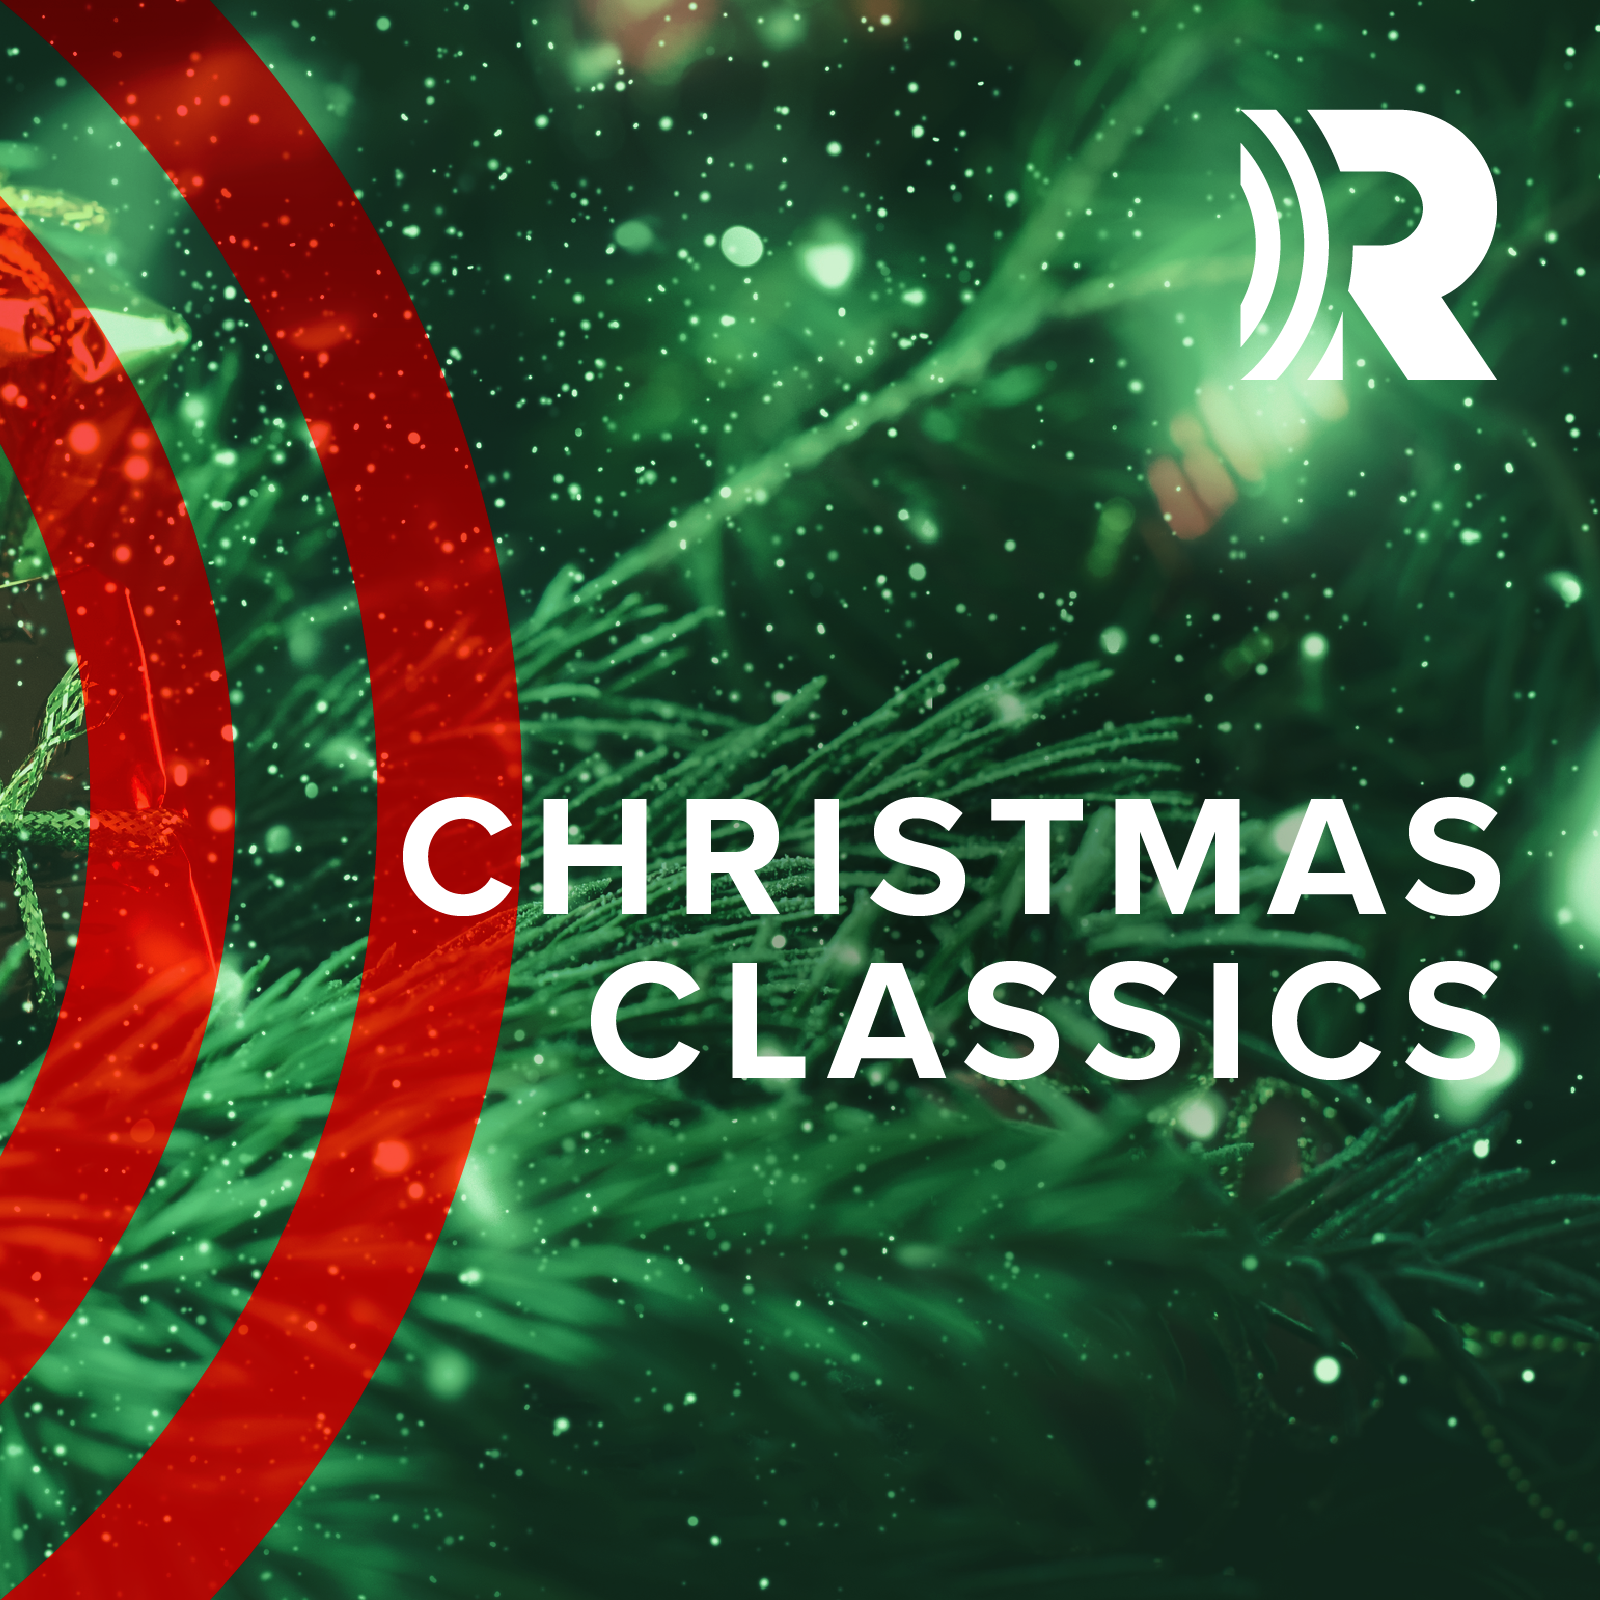 Christmas Classics on Radio com: Listen to Free Radio Online